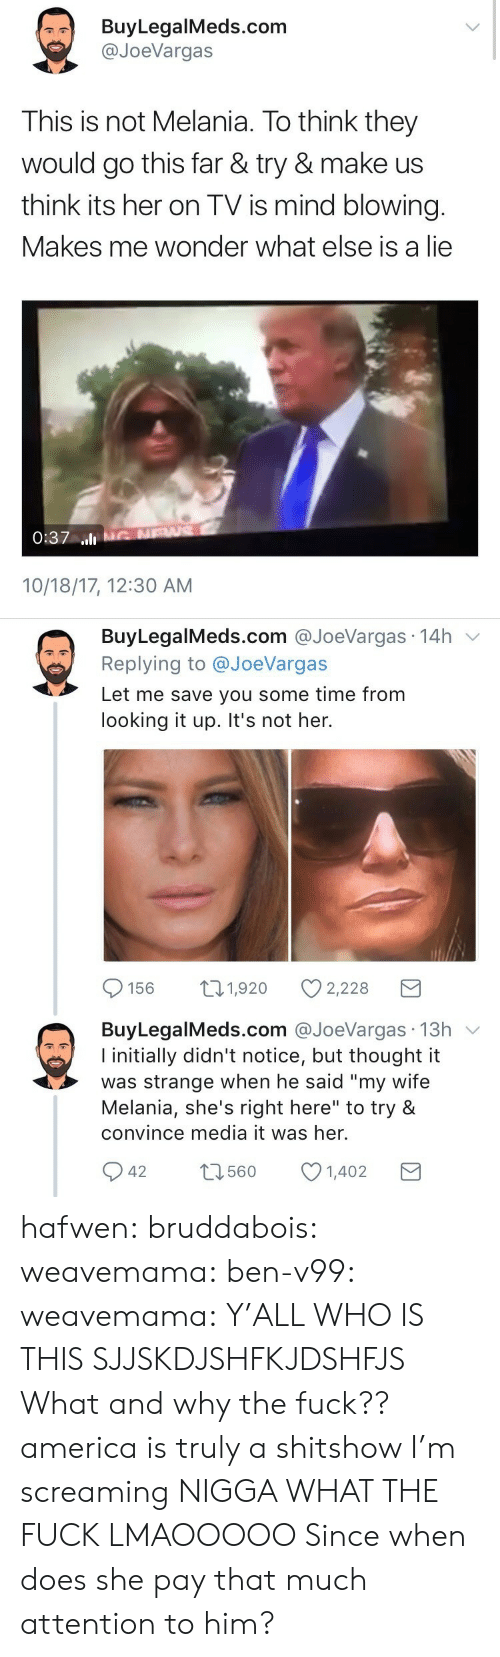 """Since When: BuyLegalMeds.com  @JoeVargas  This is not Melania. To think they  would go this far & try & make us  think its her on TV is mind blowing.  Makes me wonder what else is a lie  0:37 ll  10/18/17, 12:30 AM   BuyLegalMeds.com @JoeVargas 14h v  Replying to @JoeVargas  Let me save you some time from  looking it up. It's not her.  156 t1,920 2,228  BuyLegalMeds.com @JoeVargas 13h v  I initially didn't notice, but thought it  was strange when he said """"my wife  Melania, she's right here"""" to try &  convince media it was her.  42 1601402  t3560 hafwen:  bruddabois:  weavemama: ben-v99:   weavemama:  Y'ALL WHO IS THIS SJJSKDJSHFKJDSHFJS  What and why the fuck??   america is truly a shitshow I'm screaming   NIGGA WHAT THE FUCK LMAOOOOO  Since when does she pay that much attention to him?"""